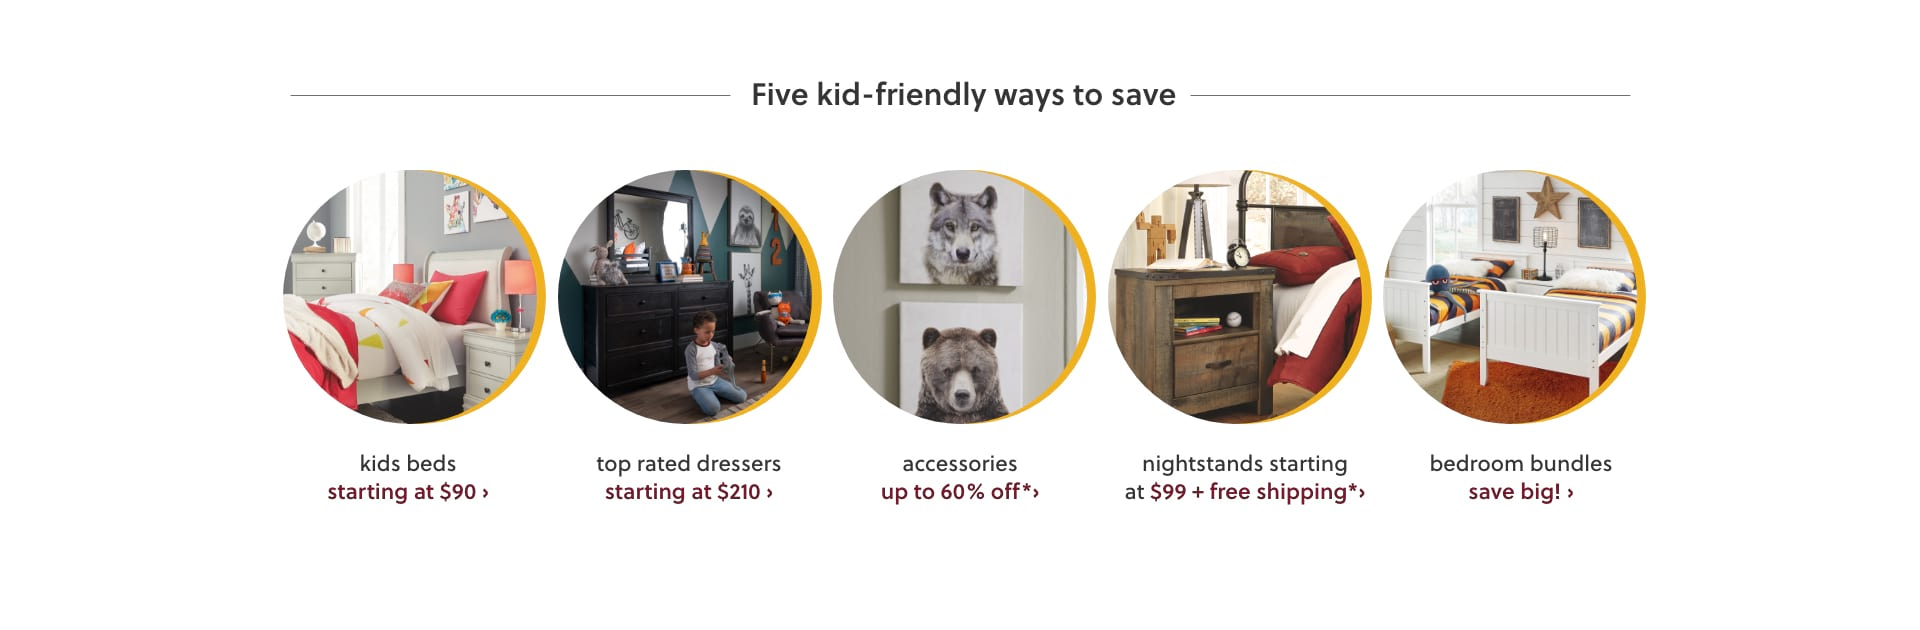 Kids Beds, Top Rated Dressers, Accessories, Nightstands, Bedroom Bundles